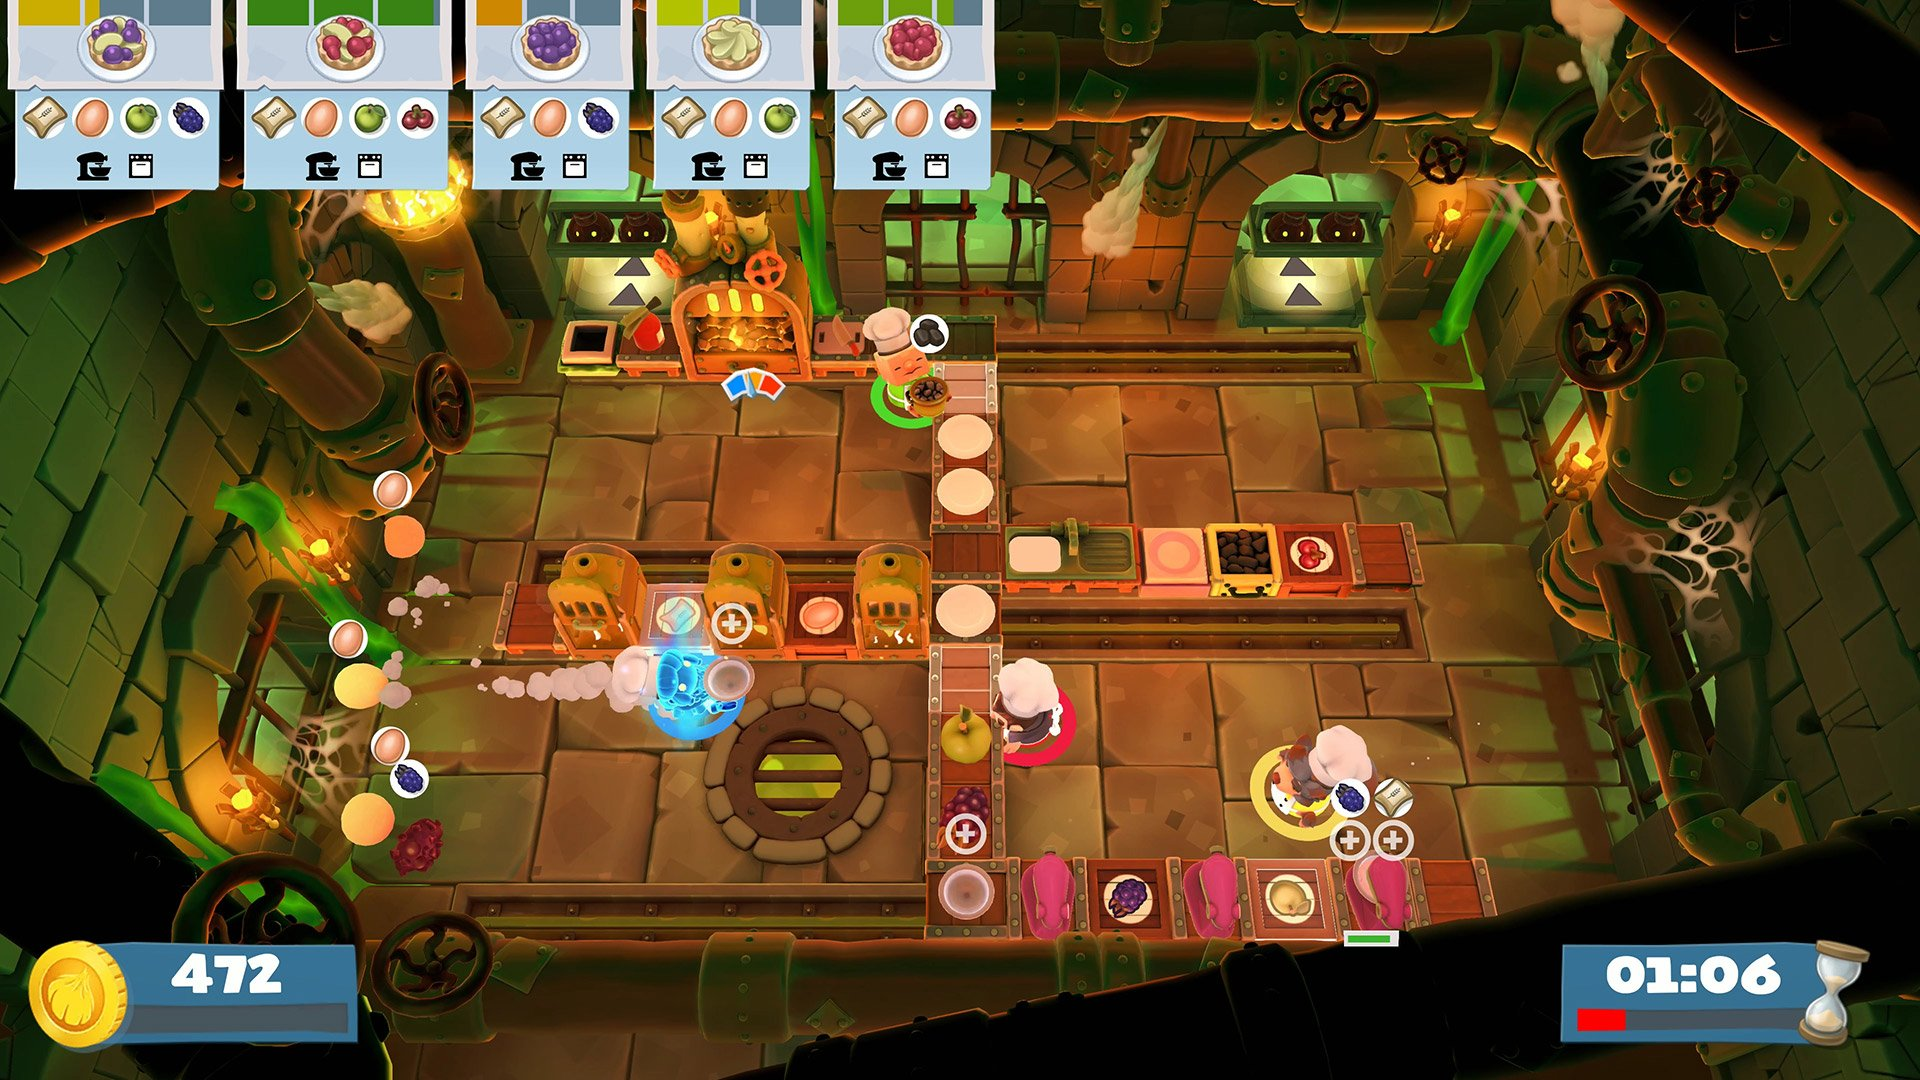 Overcooked 2 - Night of the Hangry Horde review